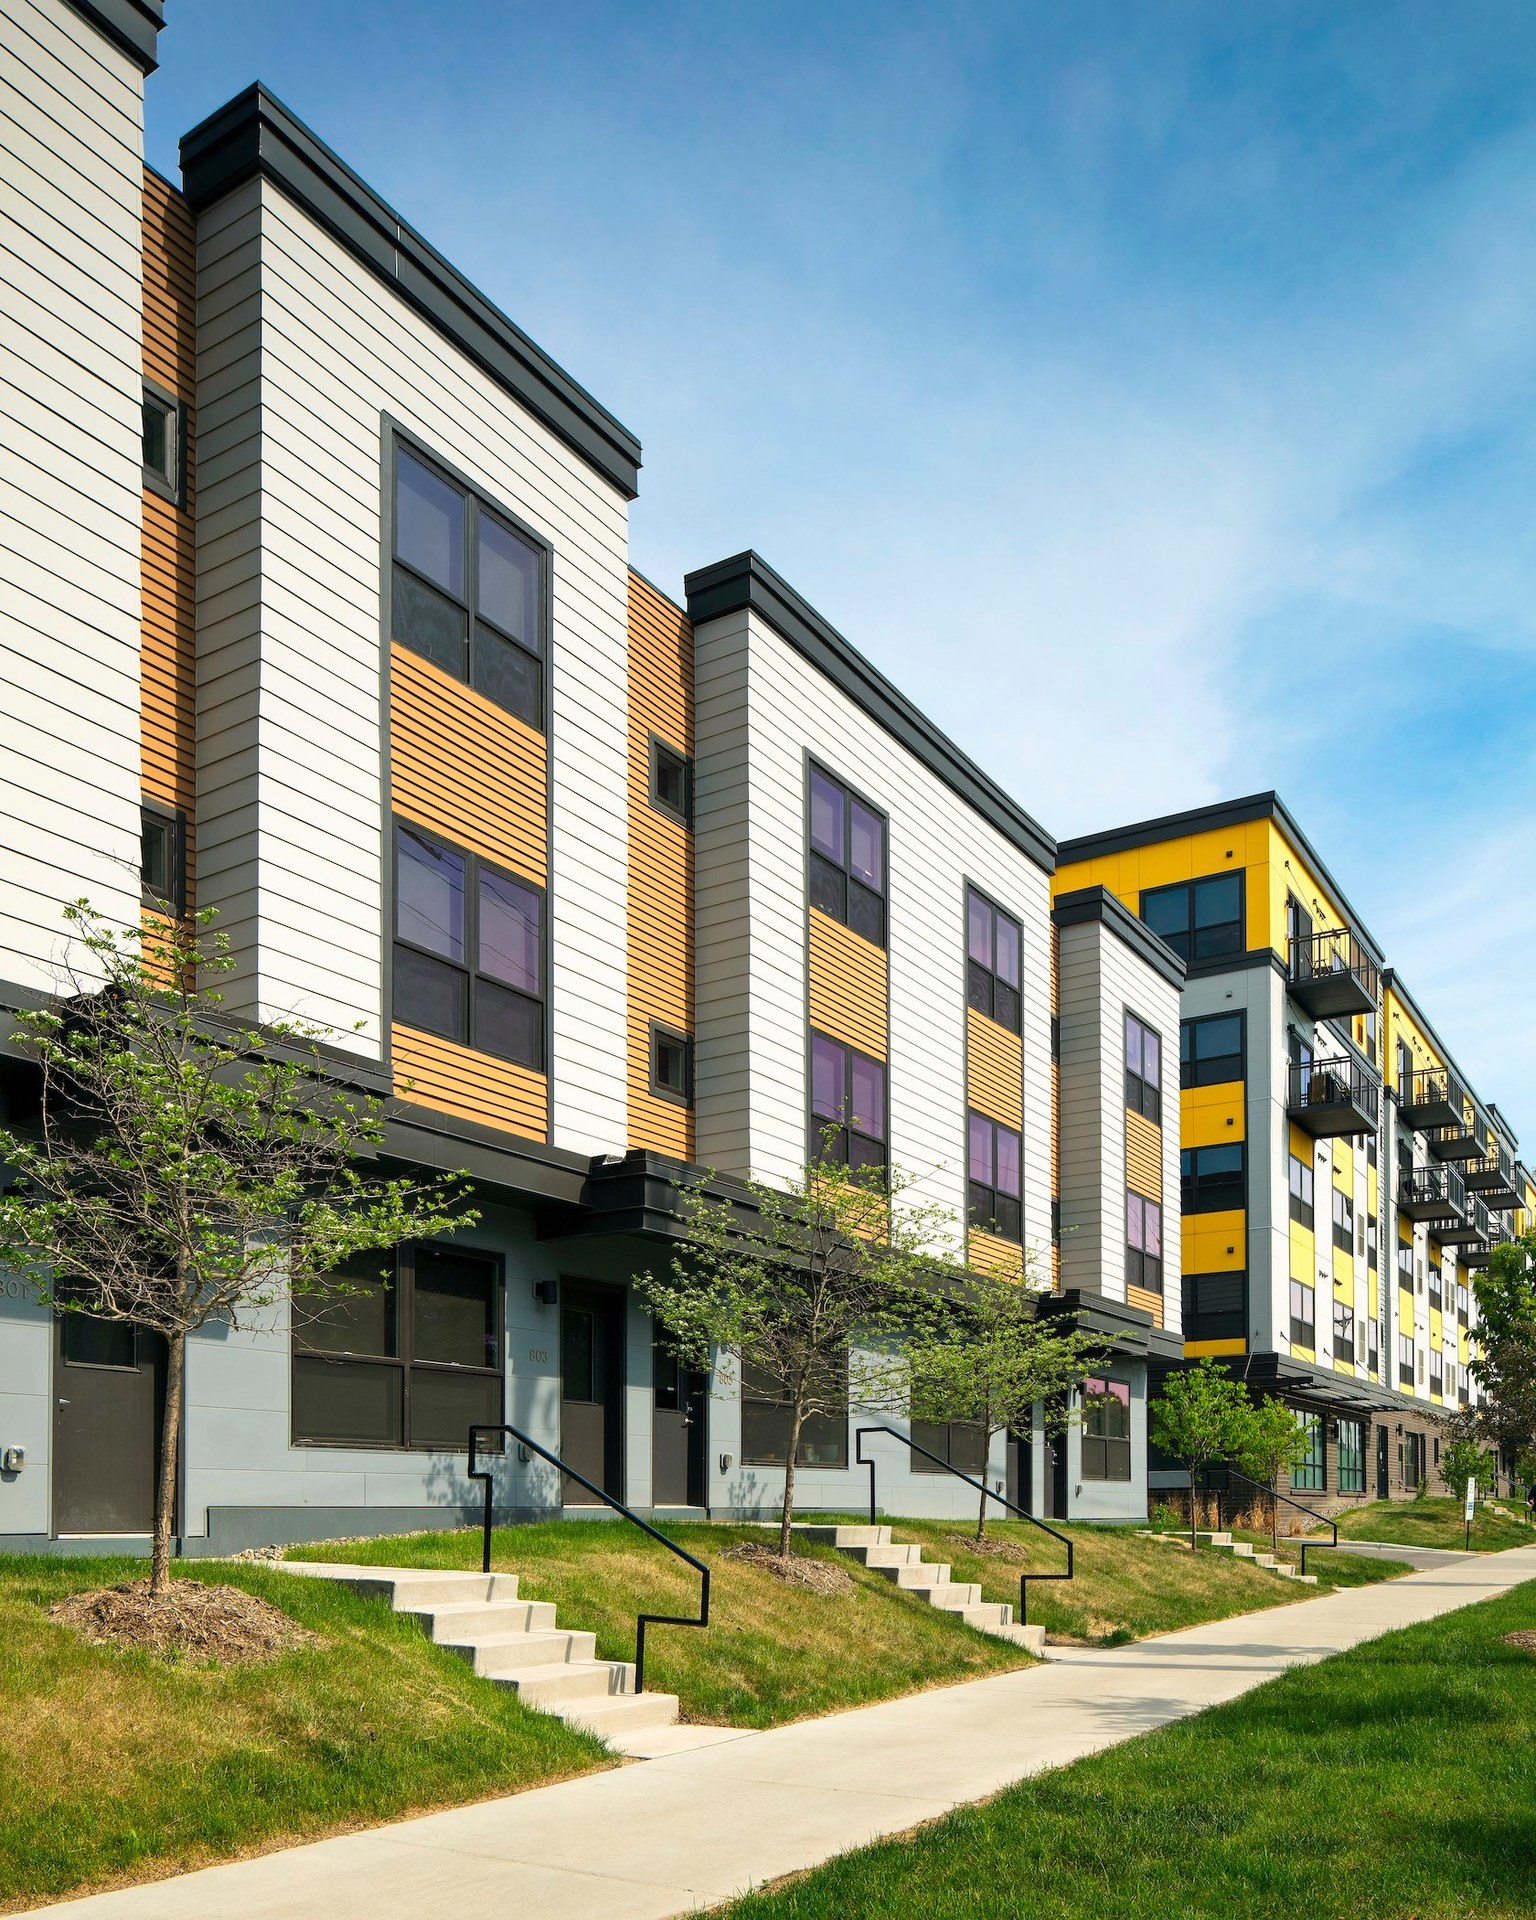 A simple and modern exterior design at the Spectrum apartments in Minneapolis, Minnesota, by DJR Architecture.